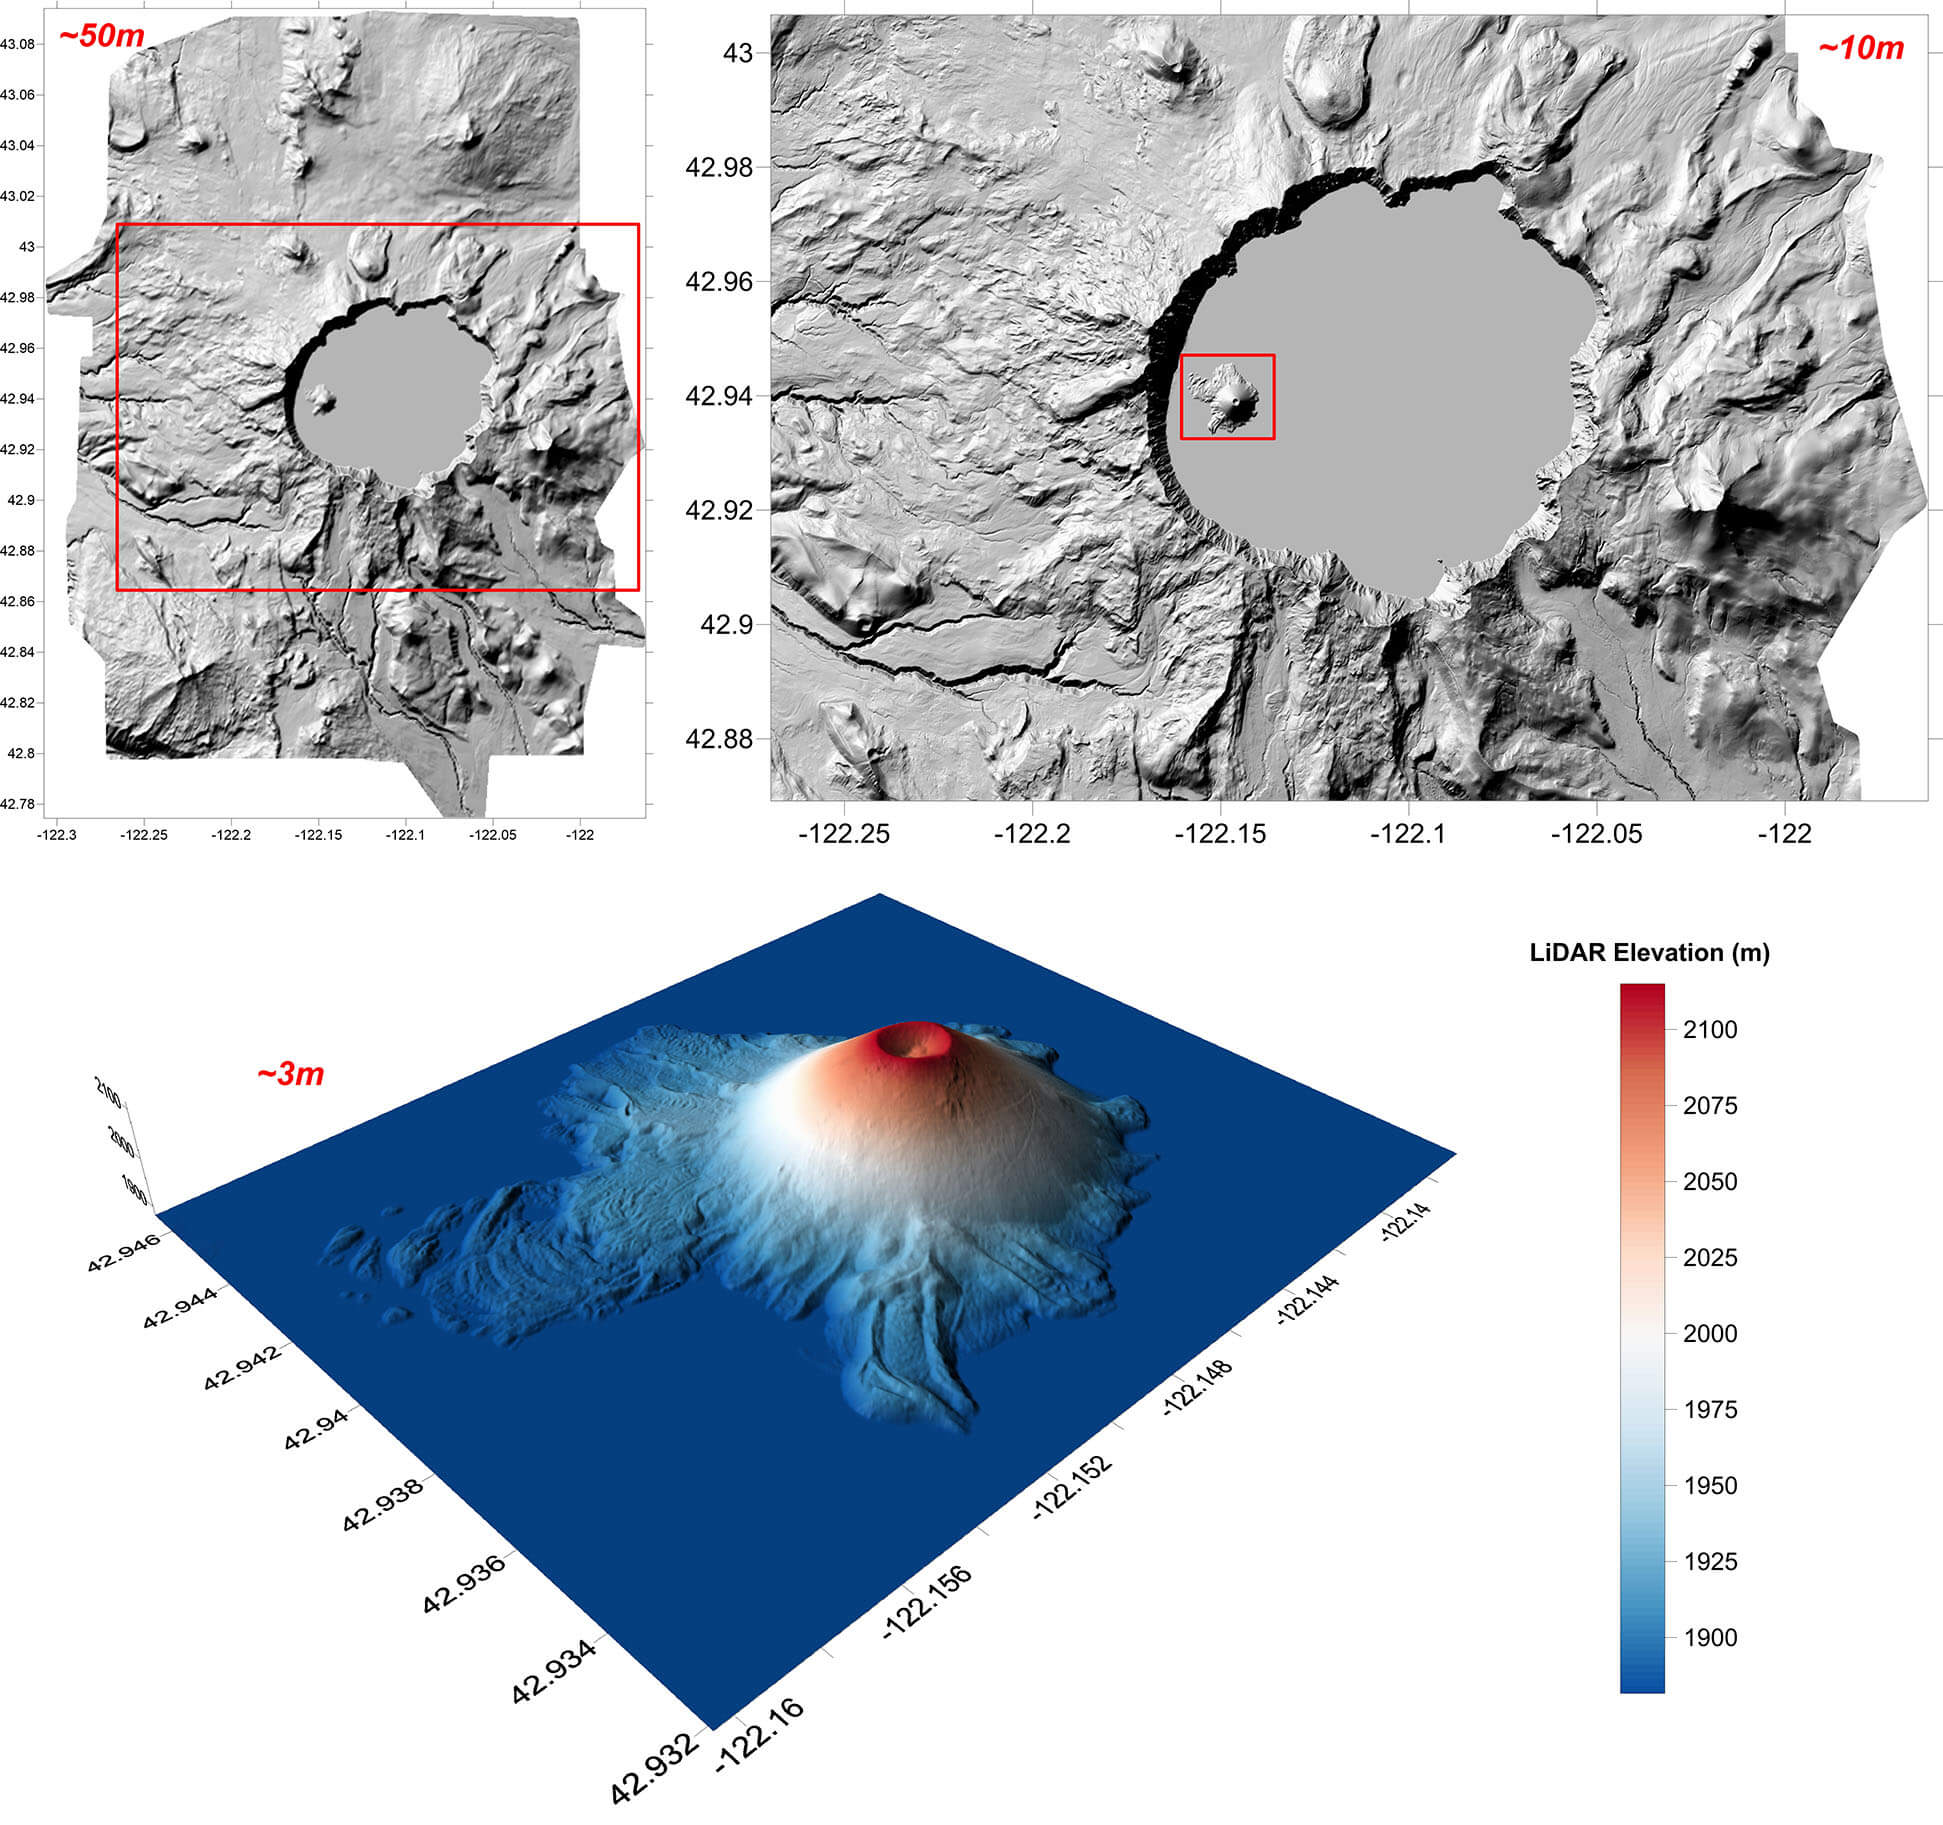 Crater Lake LiDAR Data